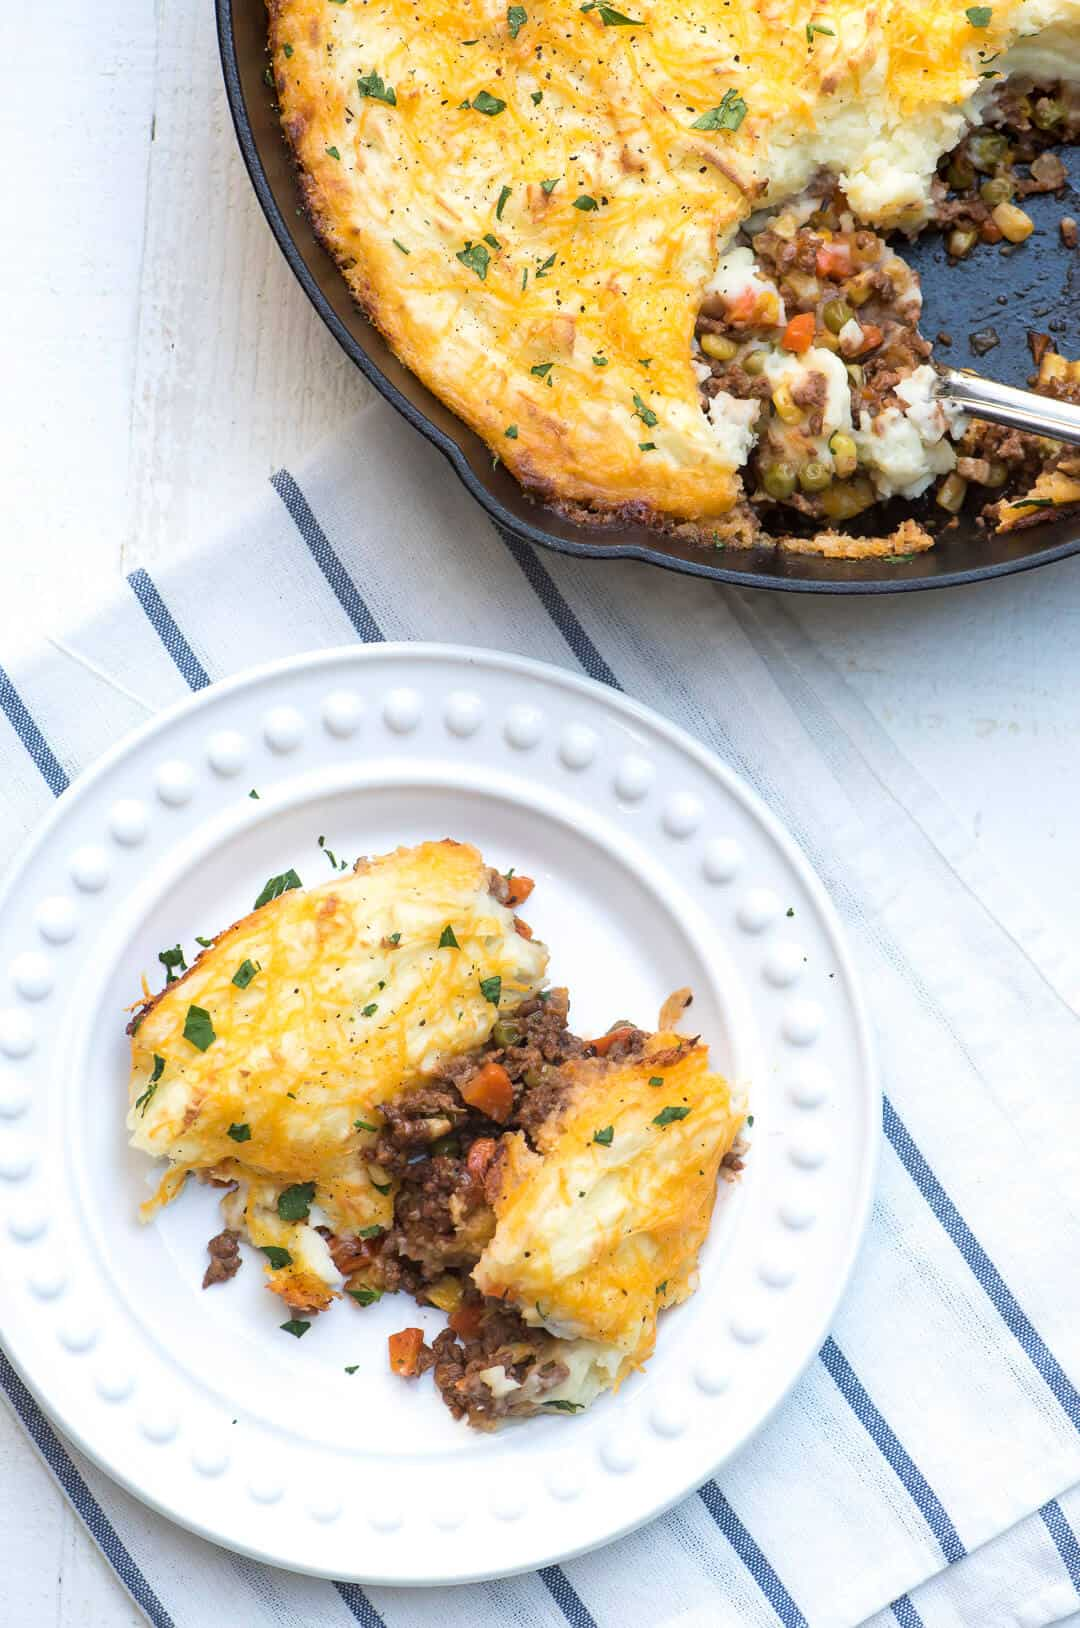 An over the top image of a serving of Skillet Shepherd's Pie on a white plate with the skillet in the background.